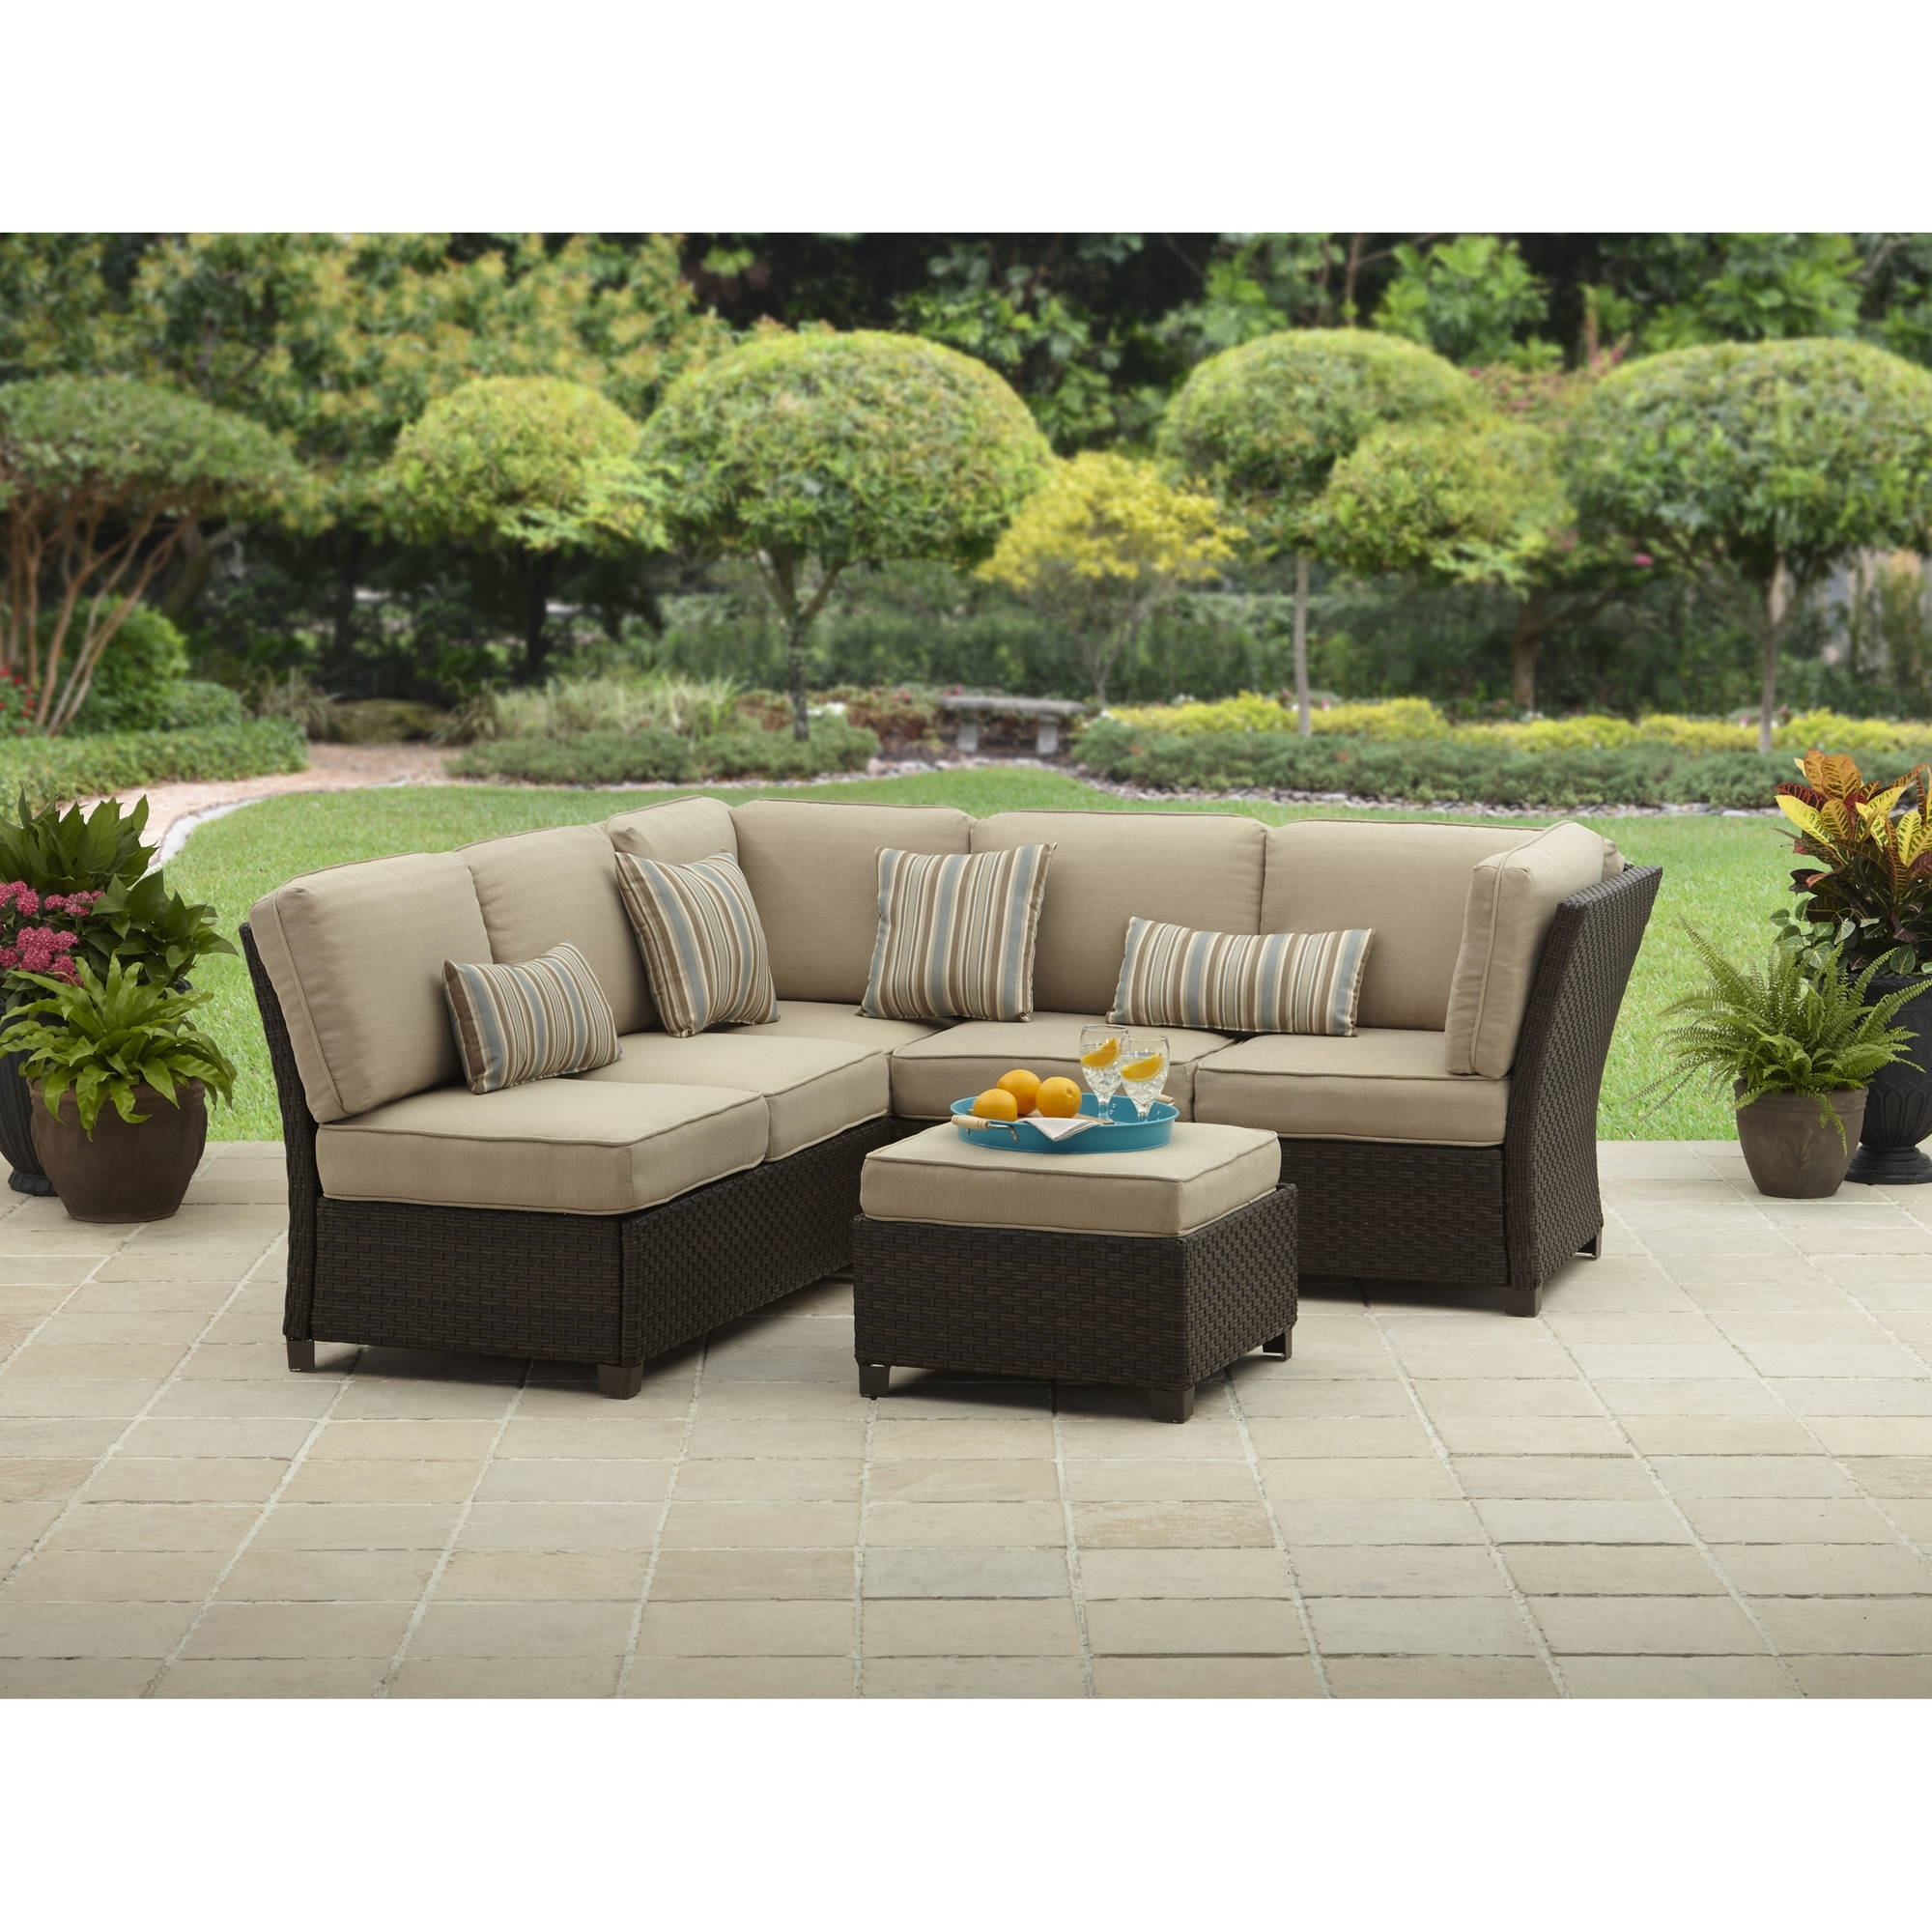 Latest Better Homes And Gardens Cadence Wicker Outdoor Sectional Sofa Set Pertaining To Sectional Sofas At Walmart (View 4 of 20)